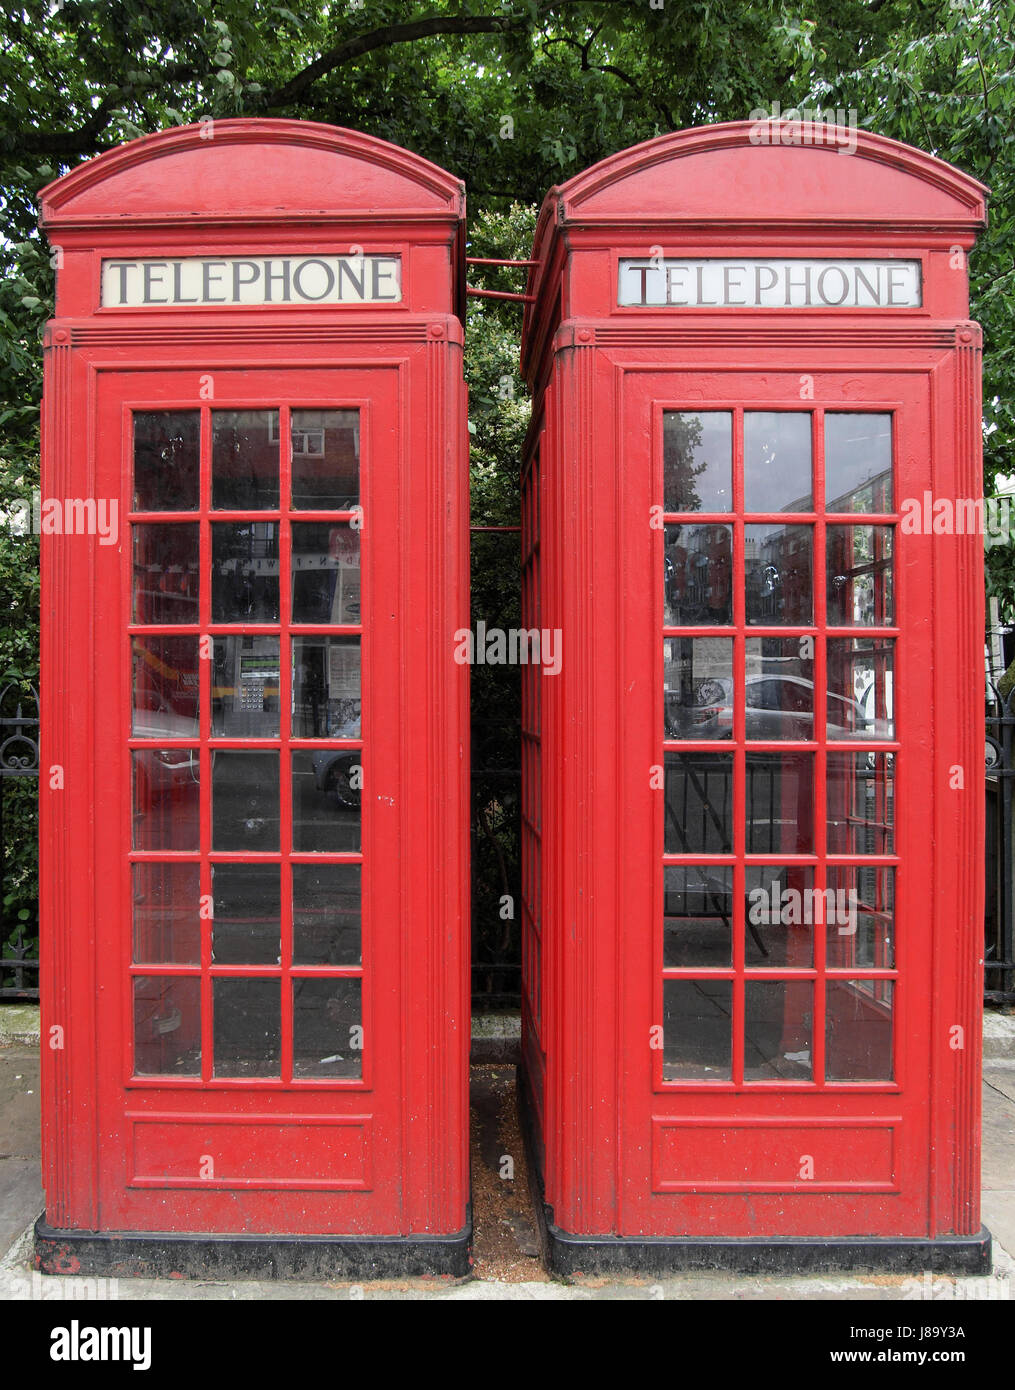 telephone, phone, city, town, london, traditional, box, boxes, landmark, red, - Stock Image